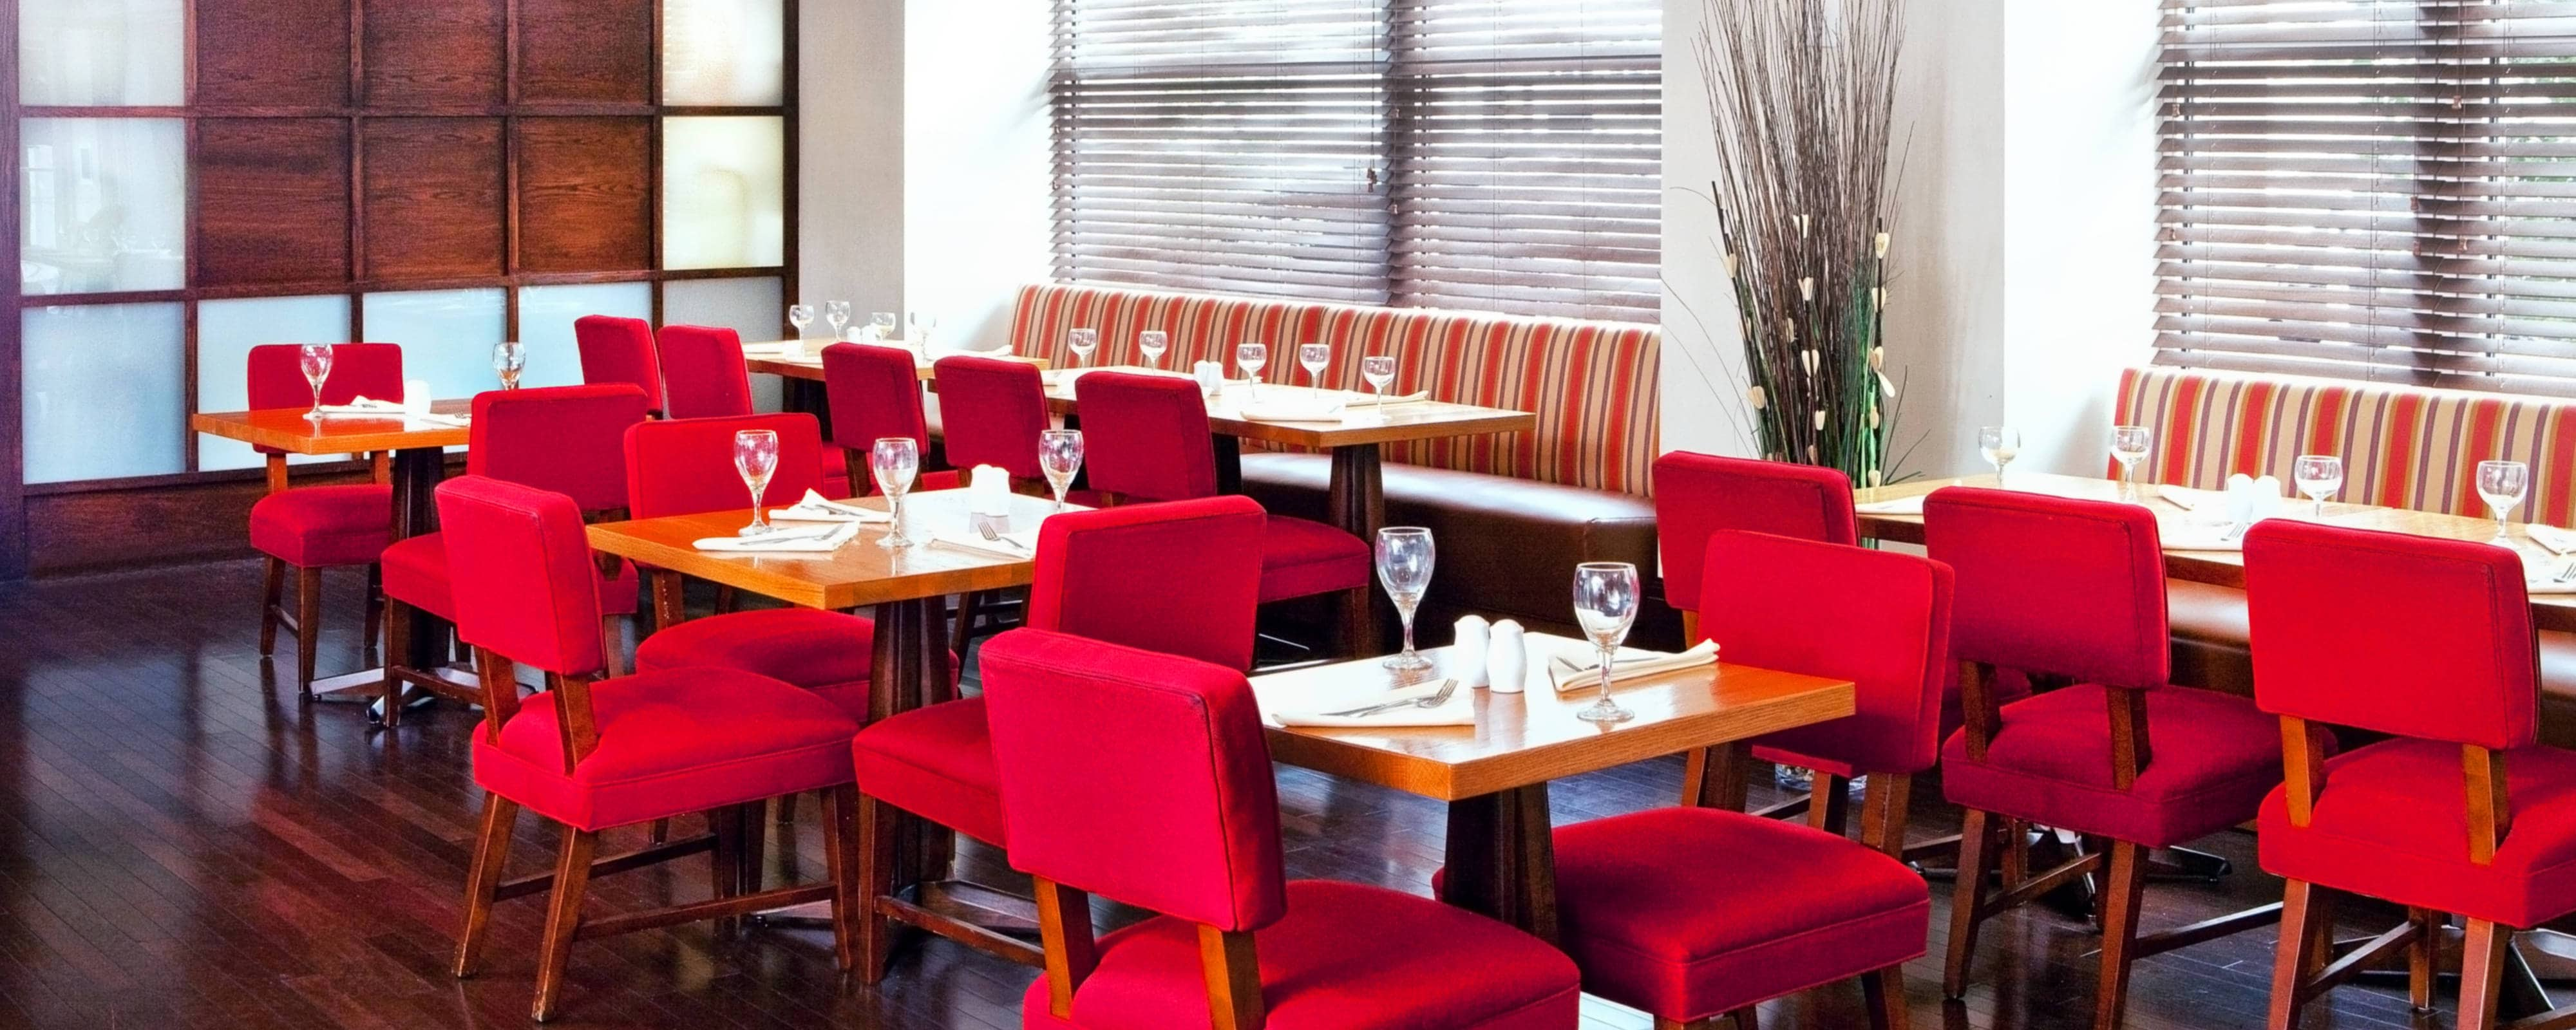 Restaurante Cherry Lounge